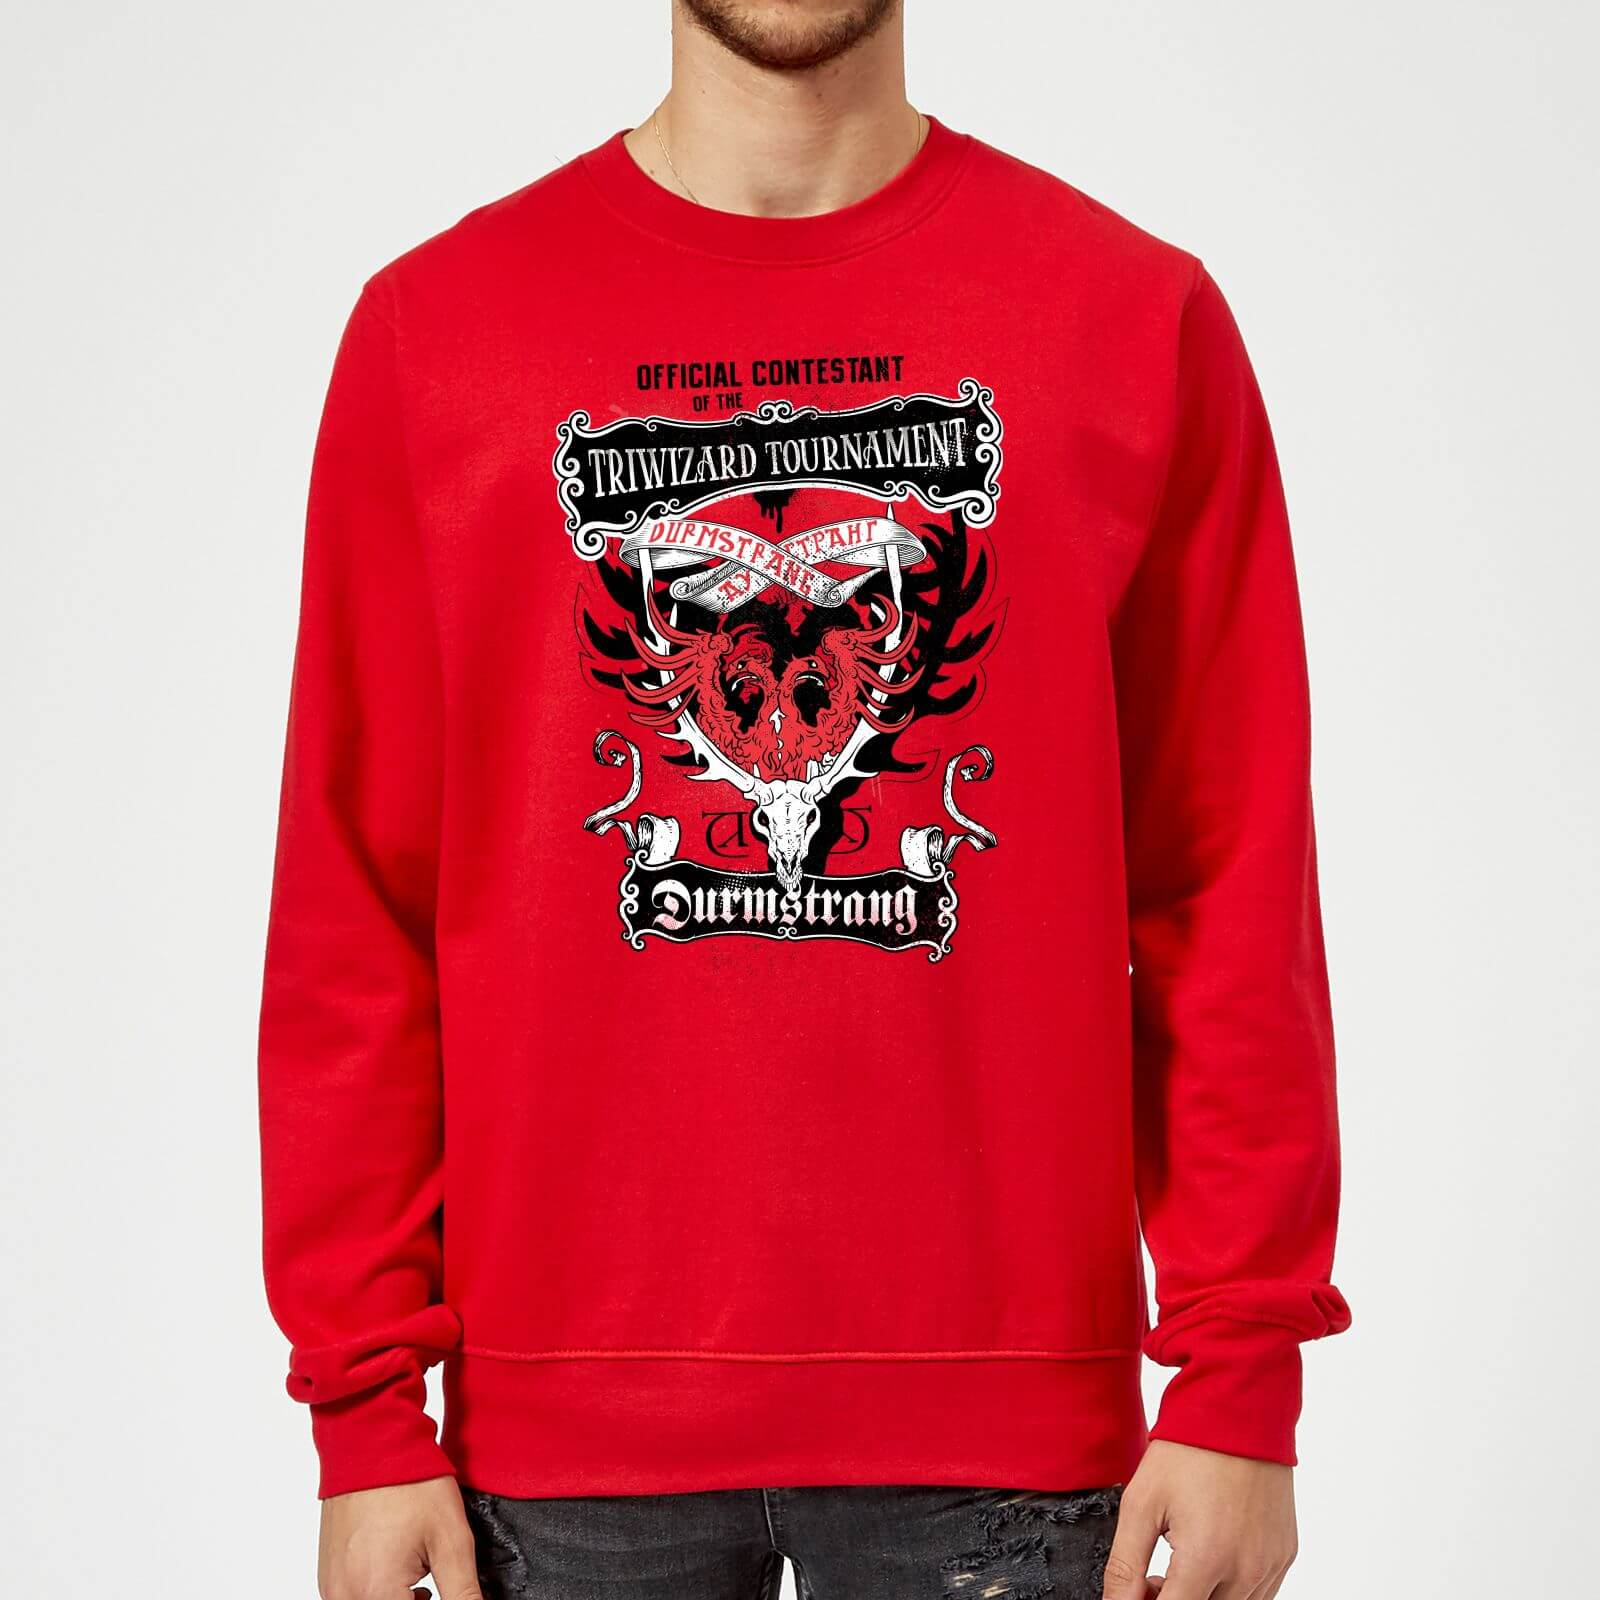 Harry Potter Triwizard Tournament Durmstrang Sweatshirt Red My Geek Box Us Each triwizard tournament designates a new champion from hogwarts, beauxbatons, and durmstrang to compete and represent their entire school. my geek box